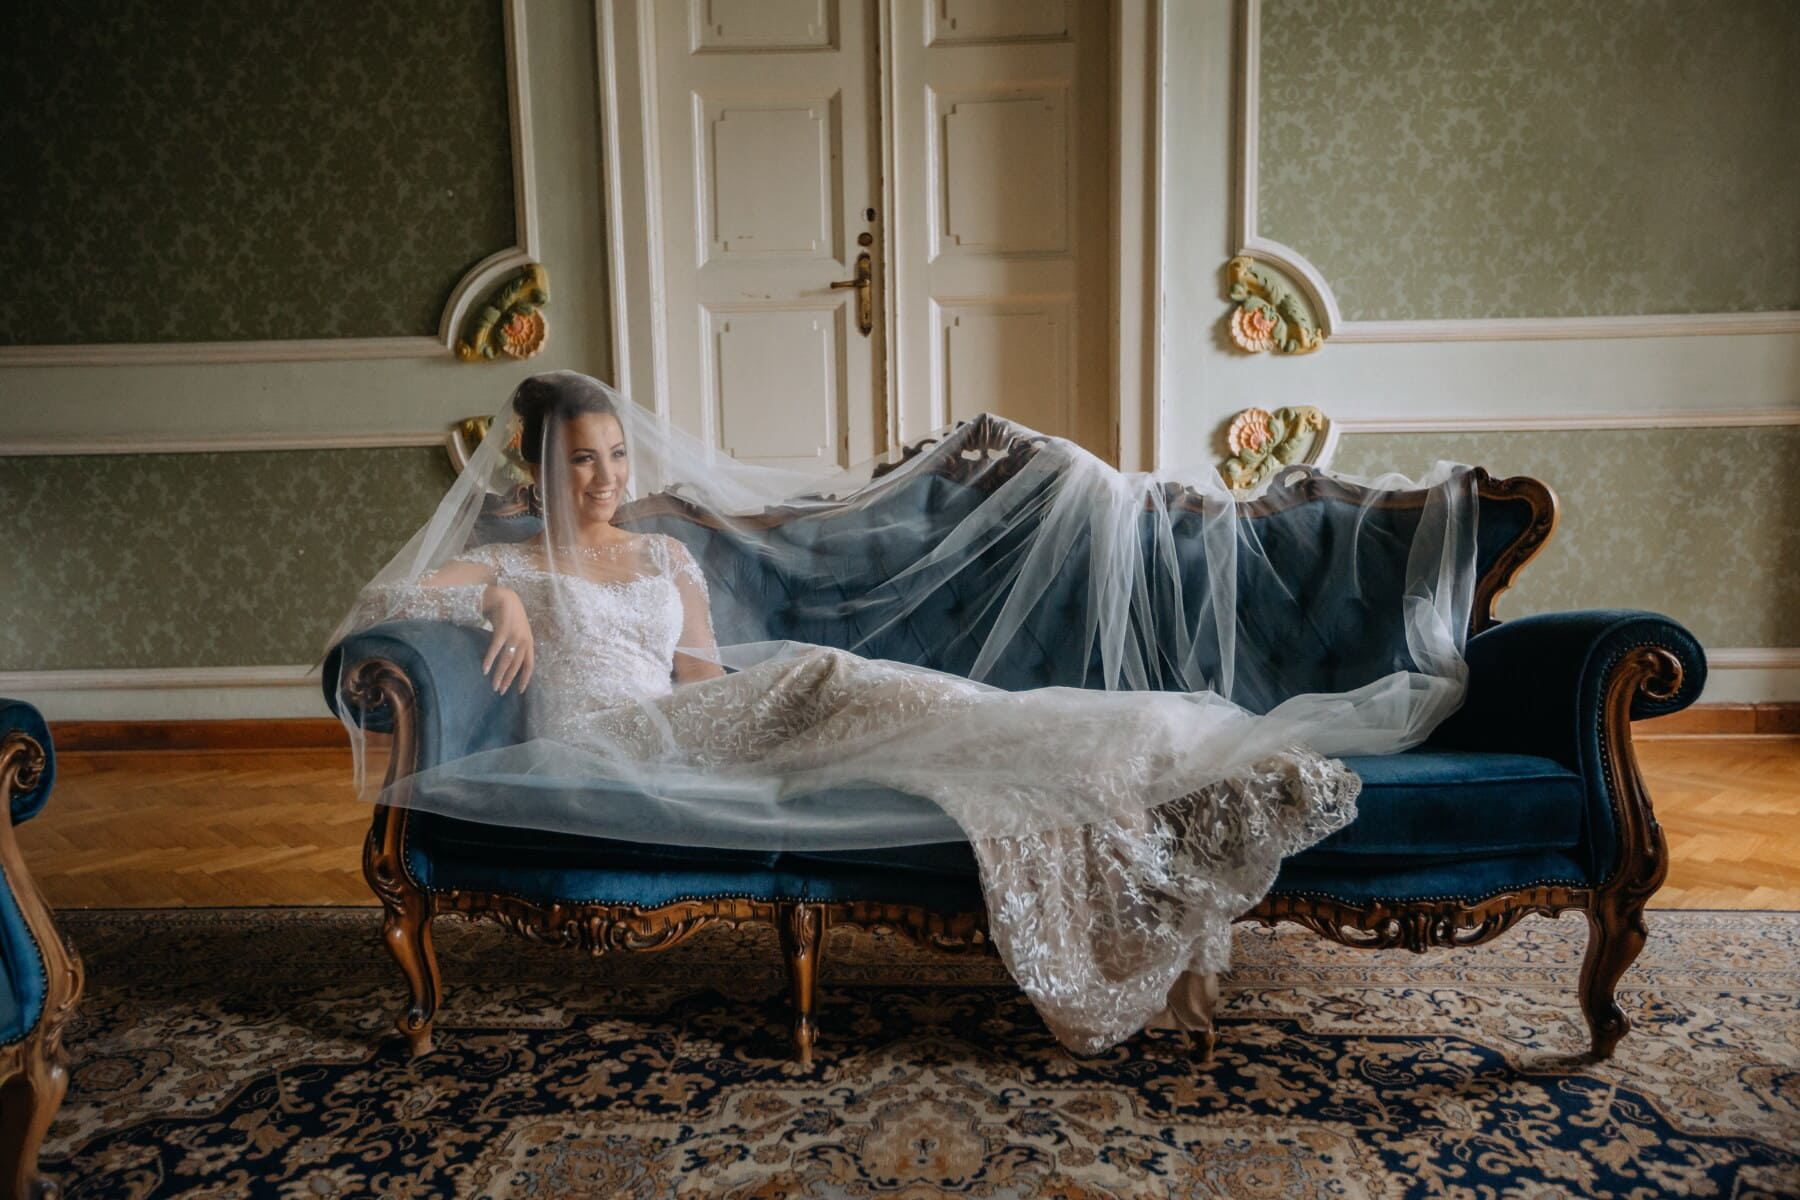 couch, bride, baroque, laying, wedding dress, veil, lifestyle, fancy, luxury, interior